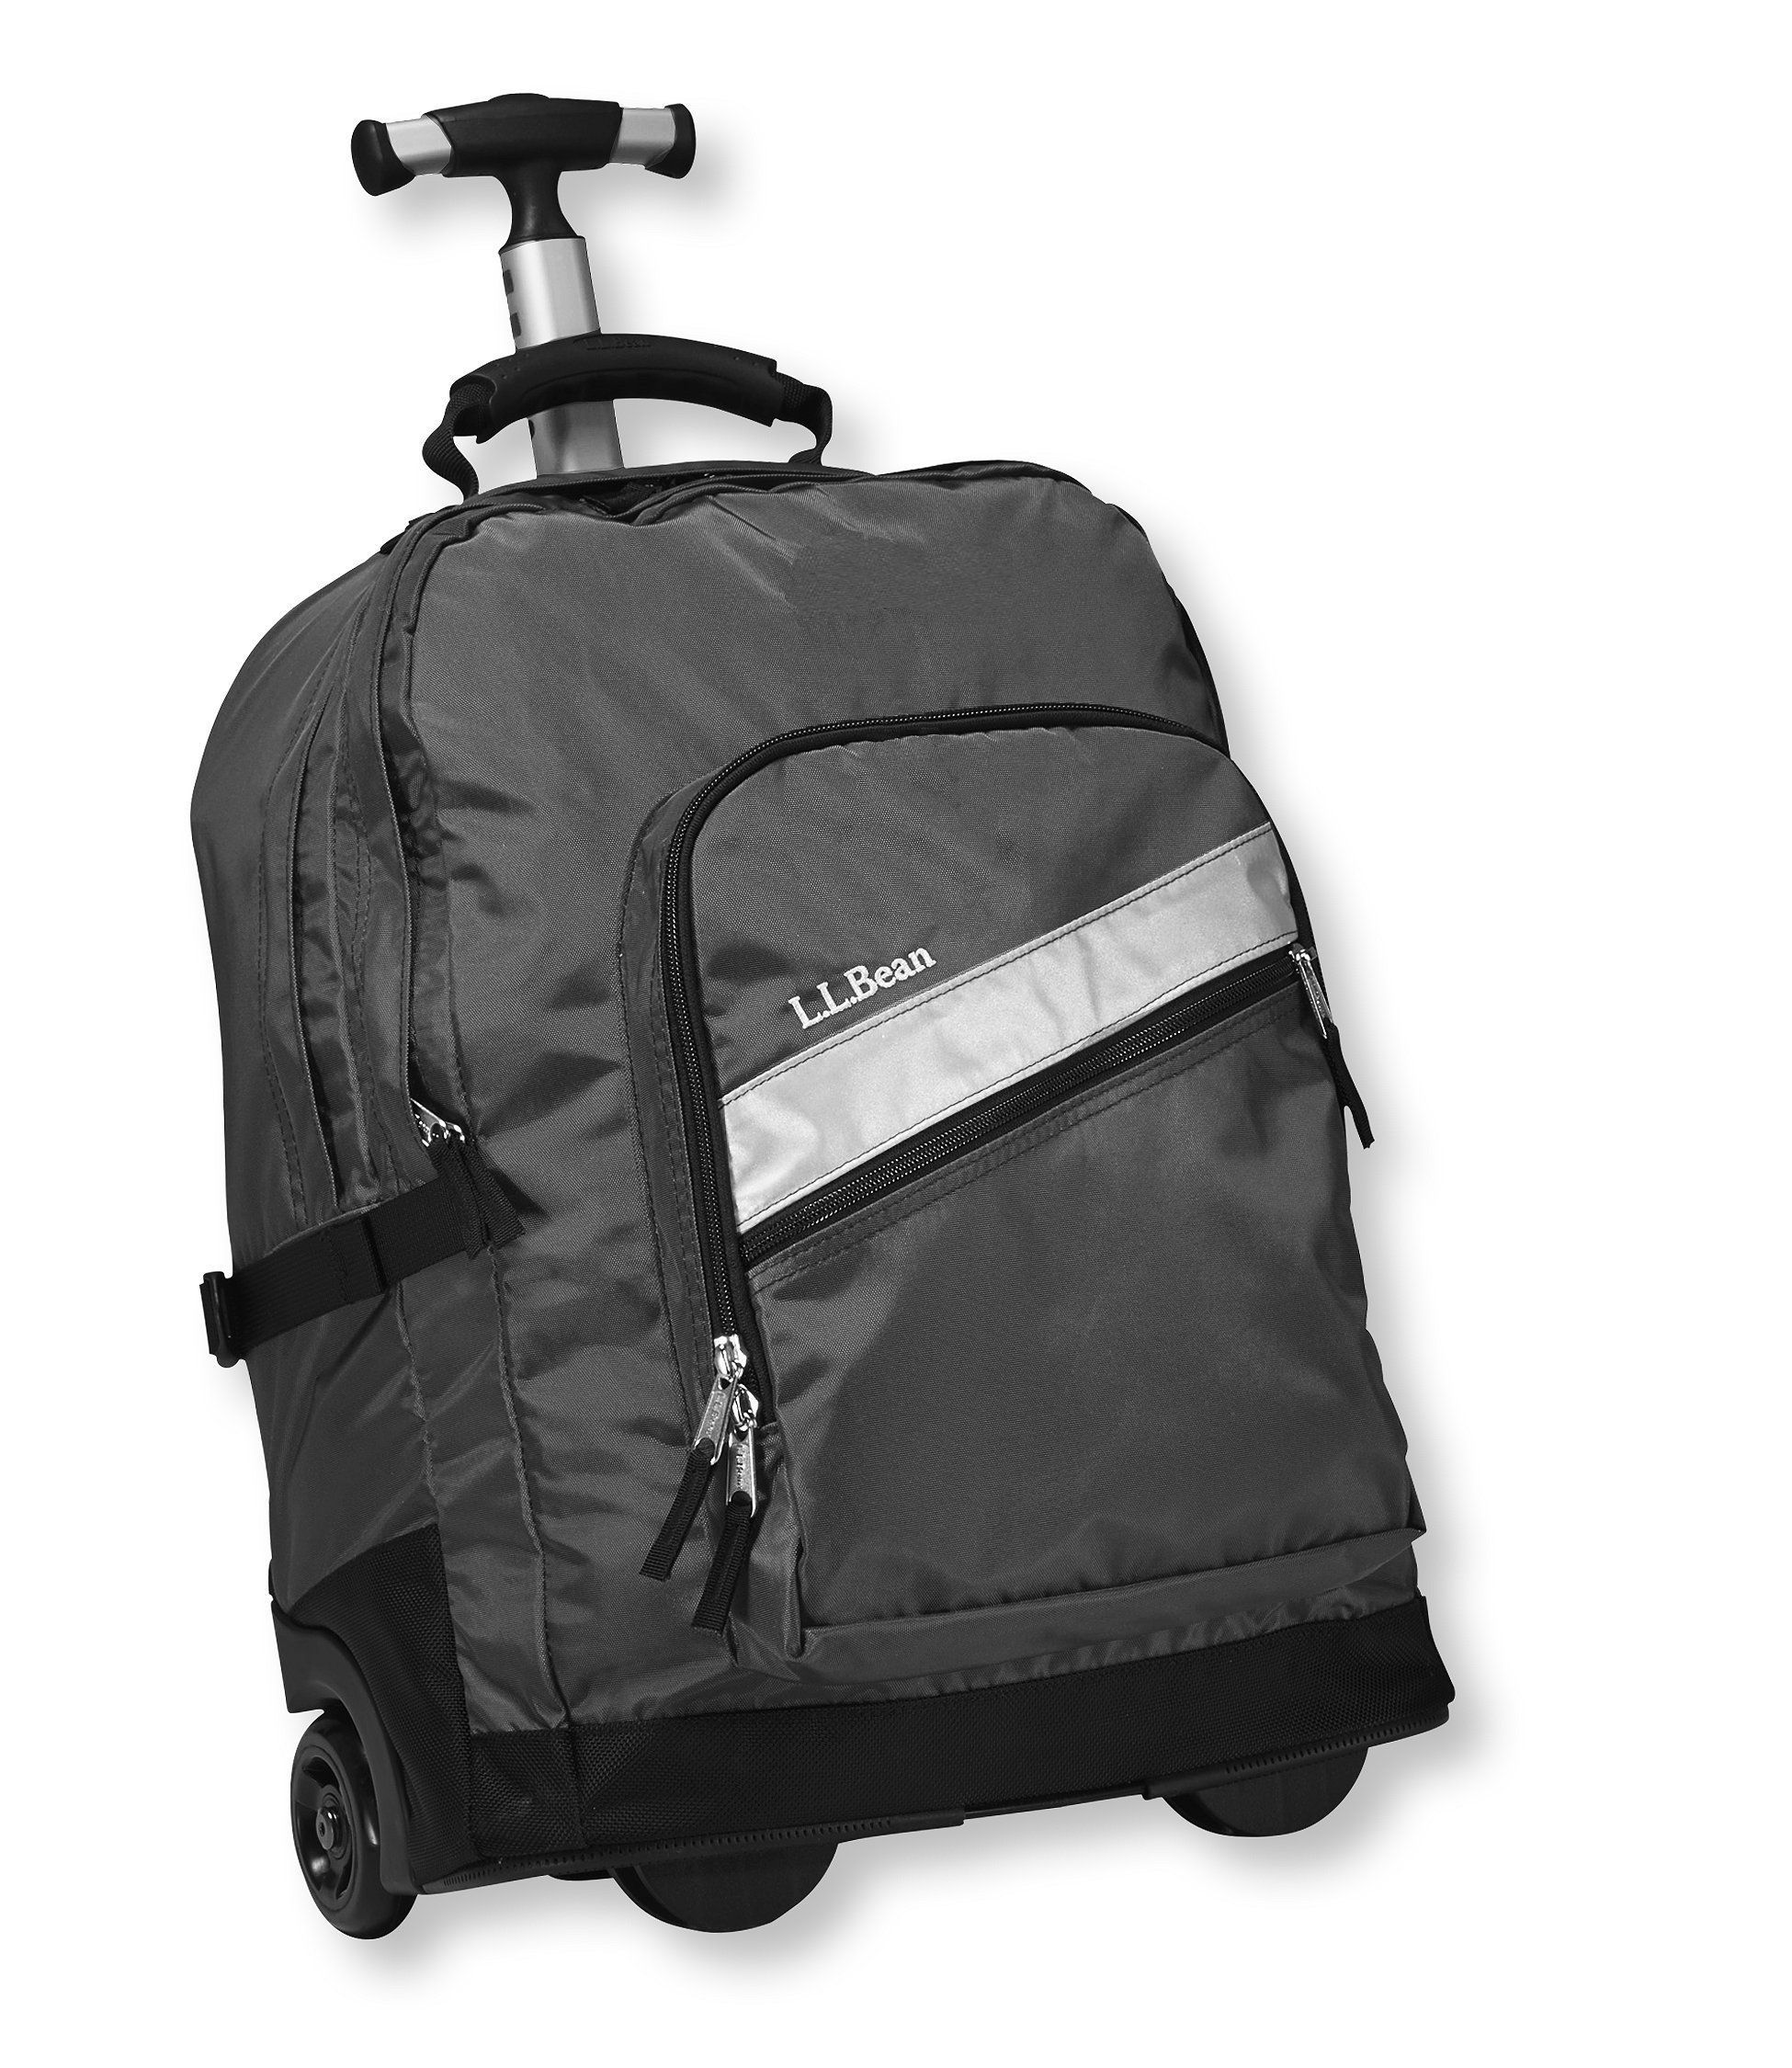 d829f5ddf08 Rolling Deluxe Backpack  backpackinggear   back packing gear ...